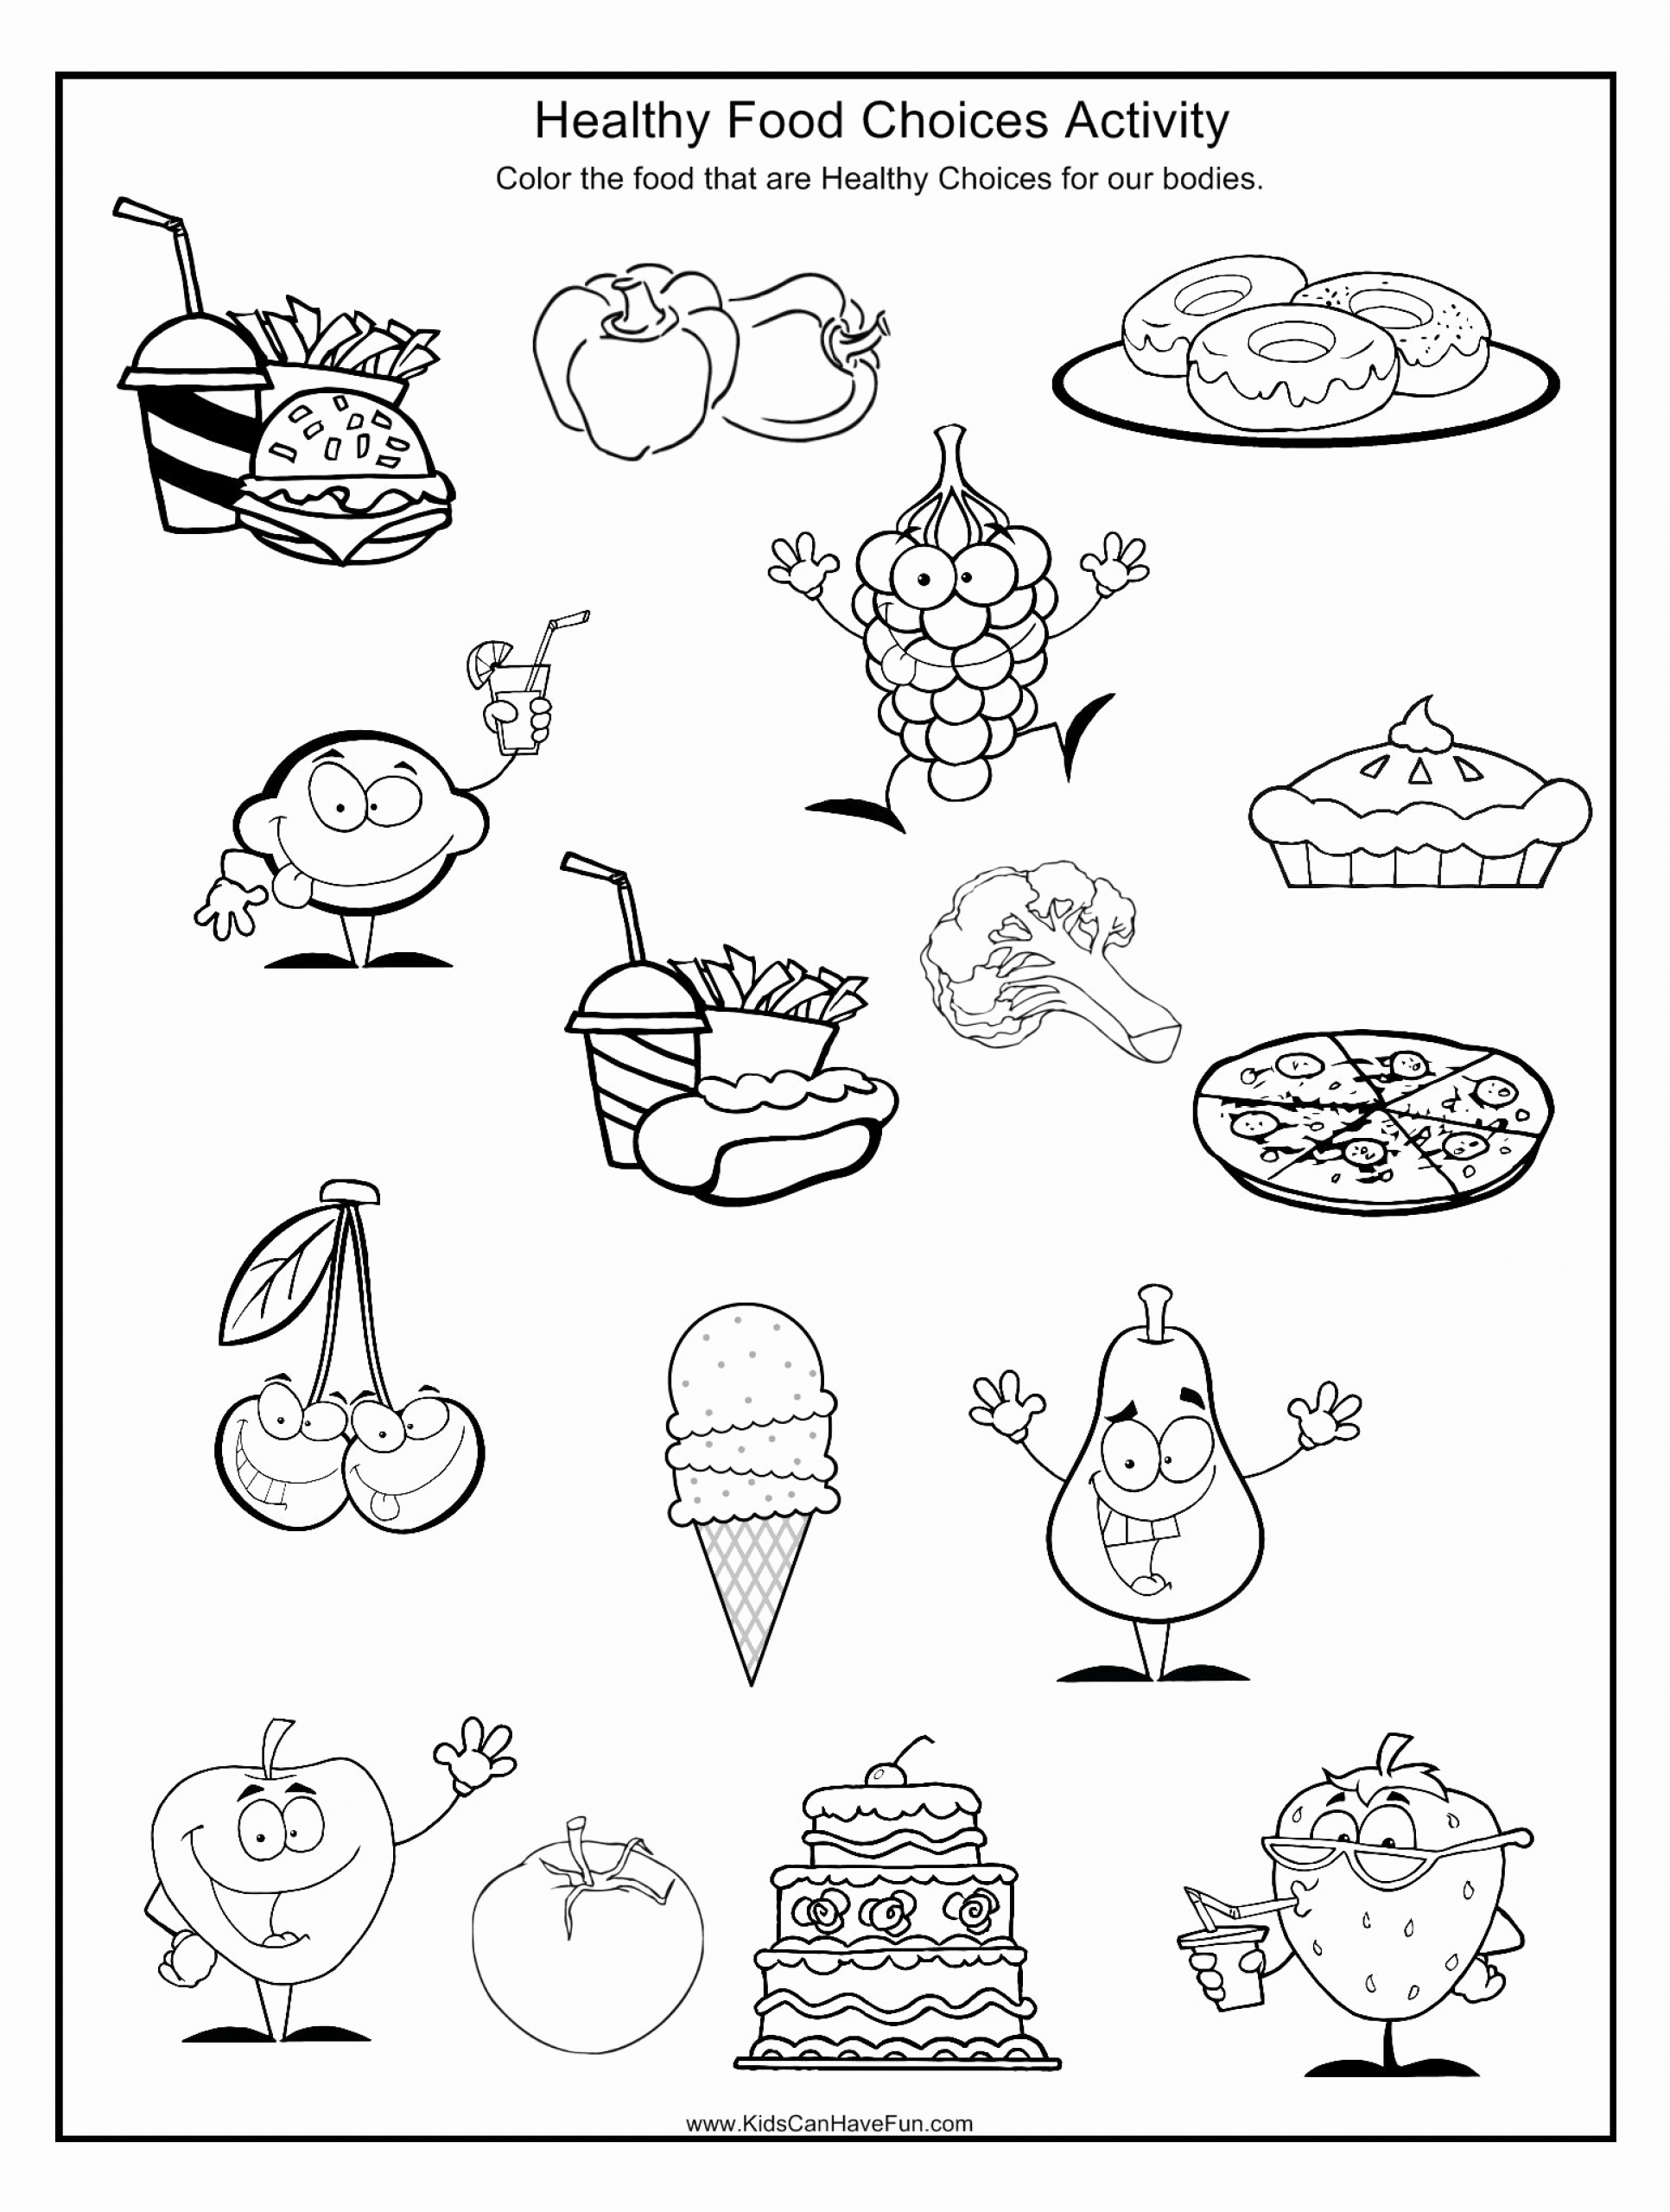 Kindergarten Nutrition Worksheets Unique Healthy Food Choices Worksheet Scanhavefun